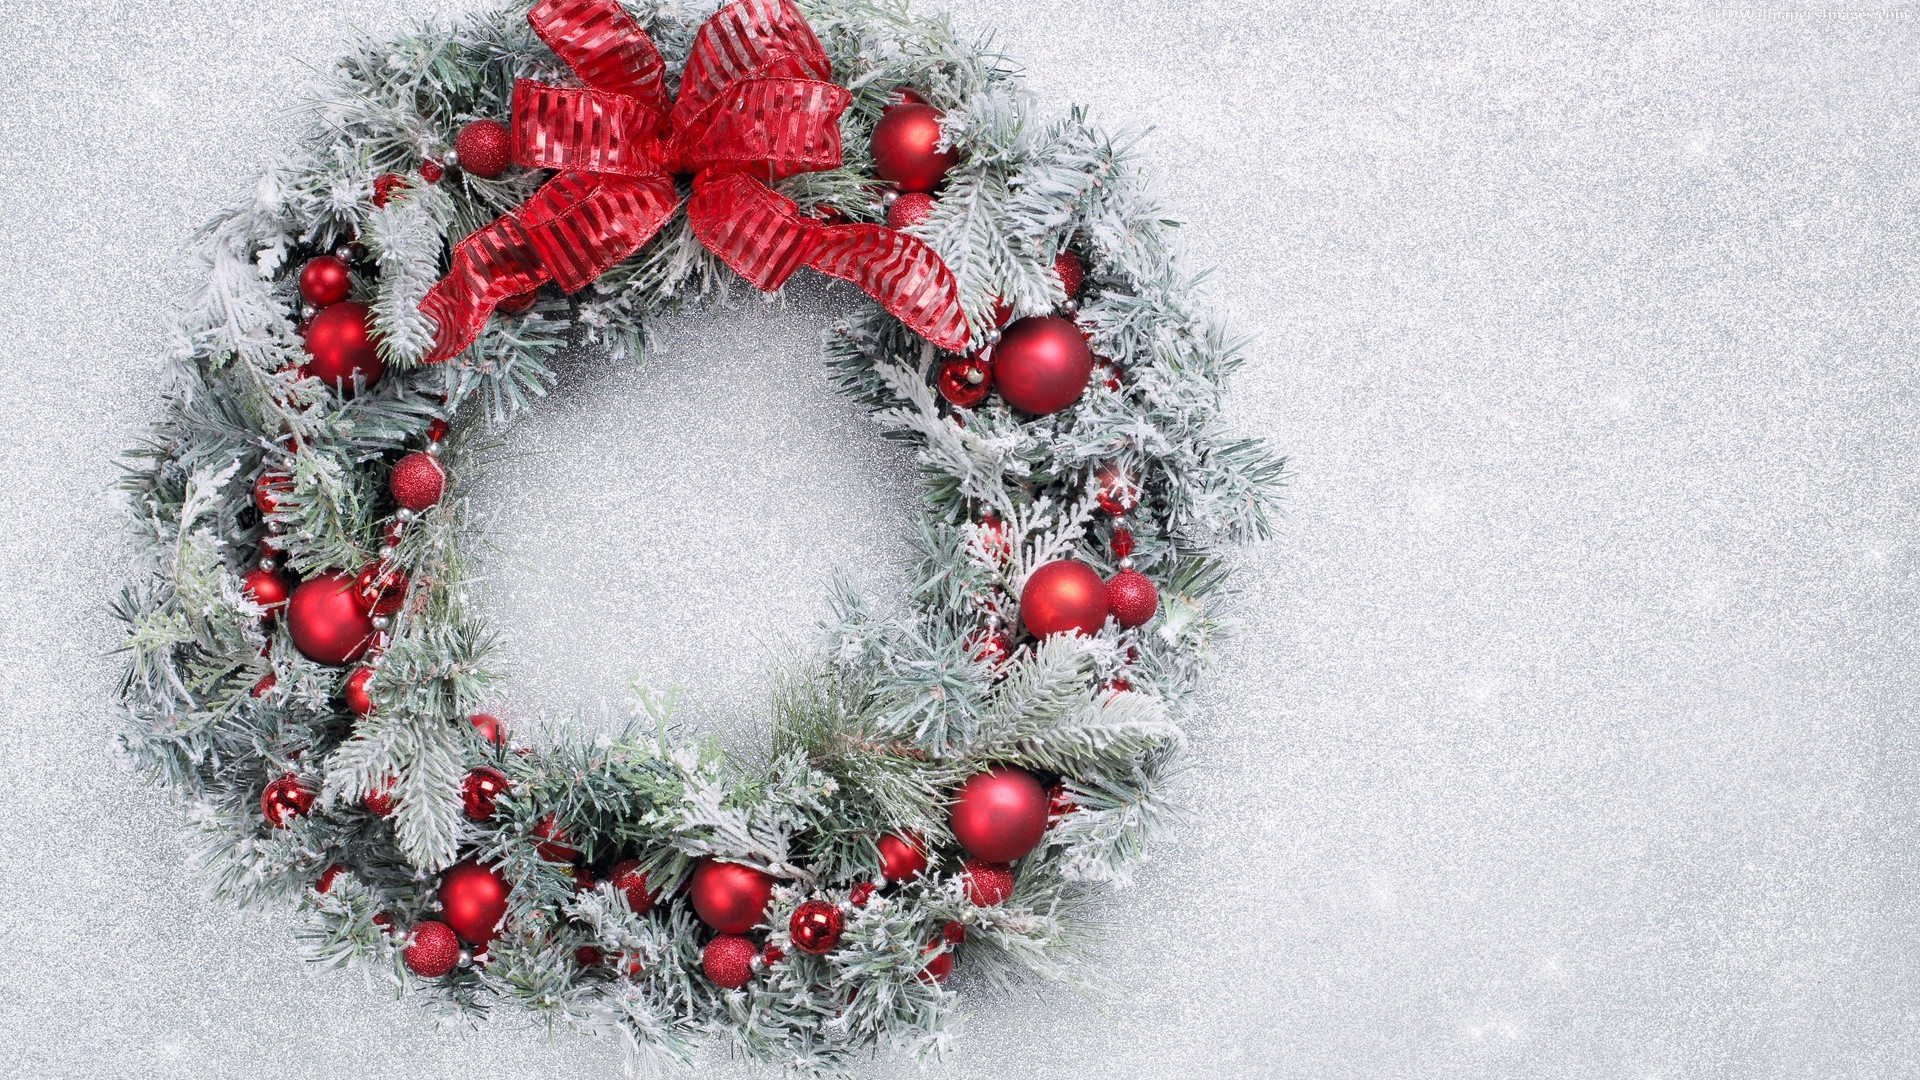 4K Wreaths Wallpapers High Quality | Download Free